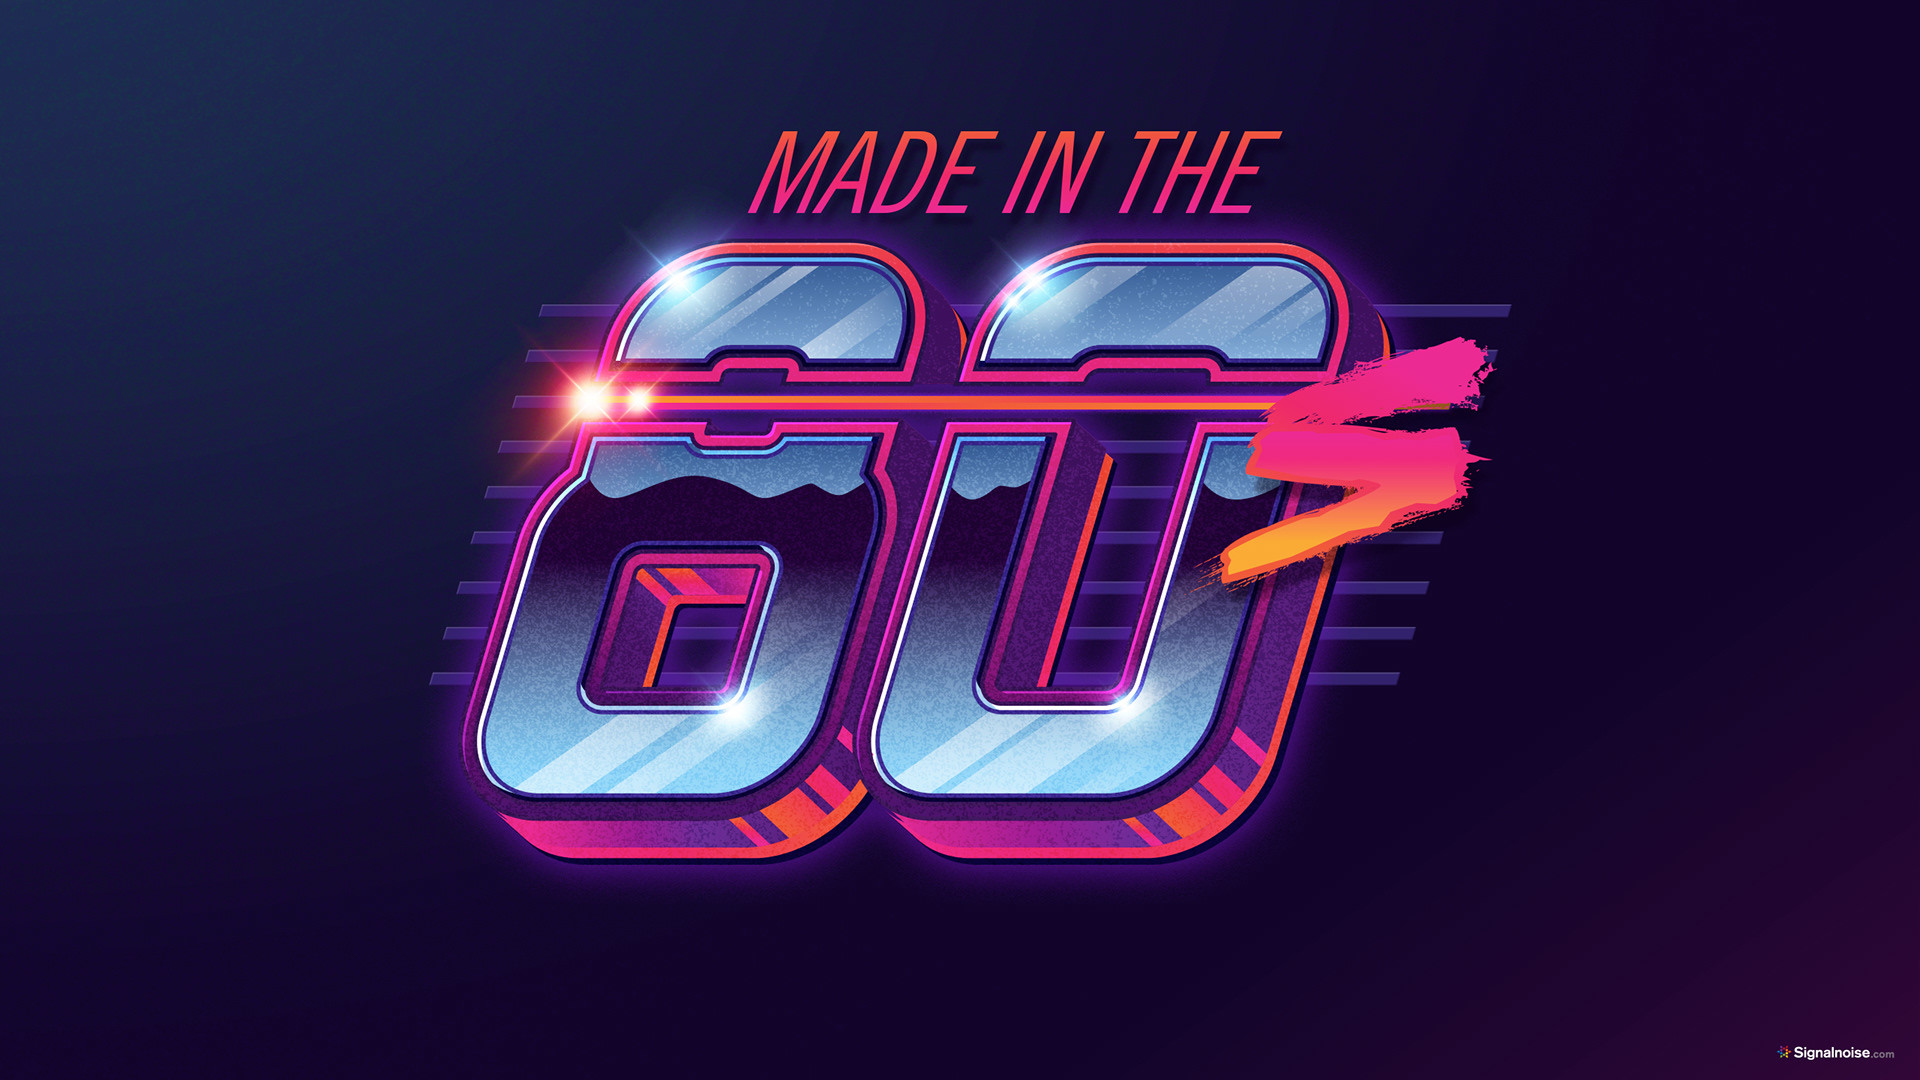 Made in the 80s. '